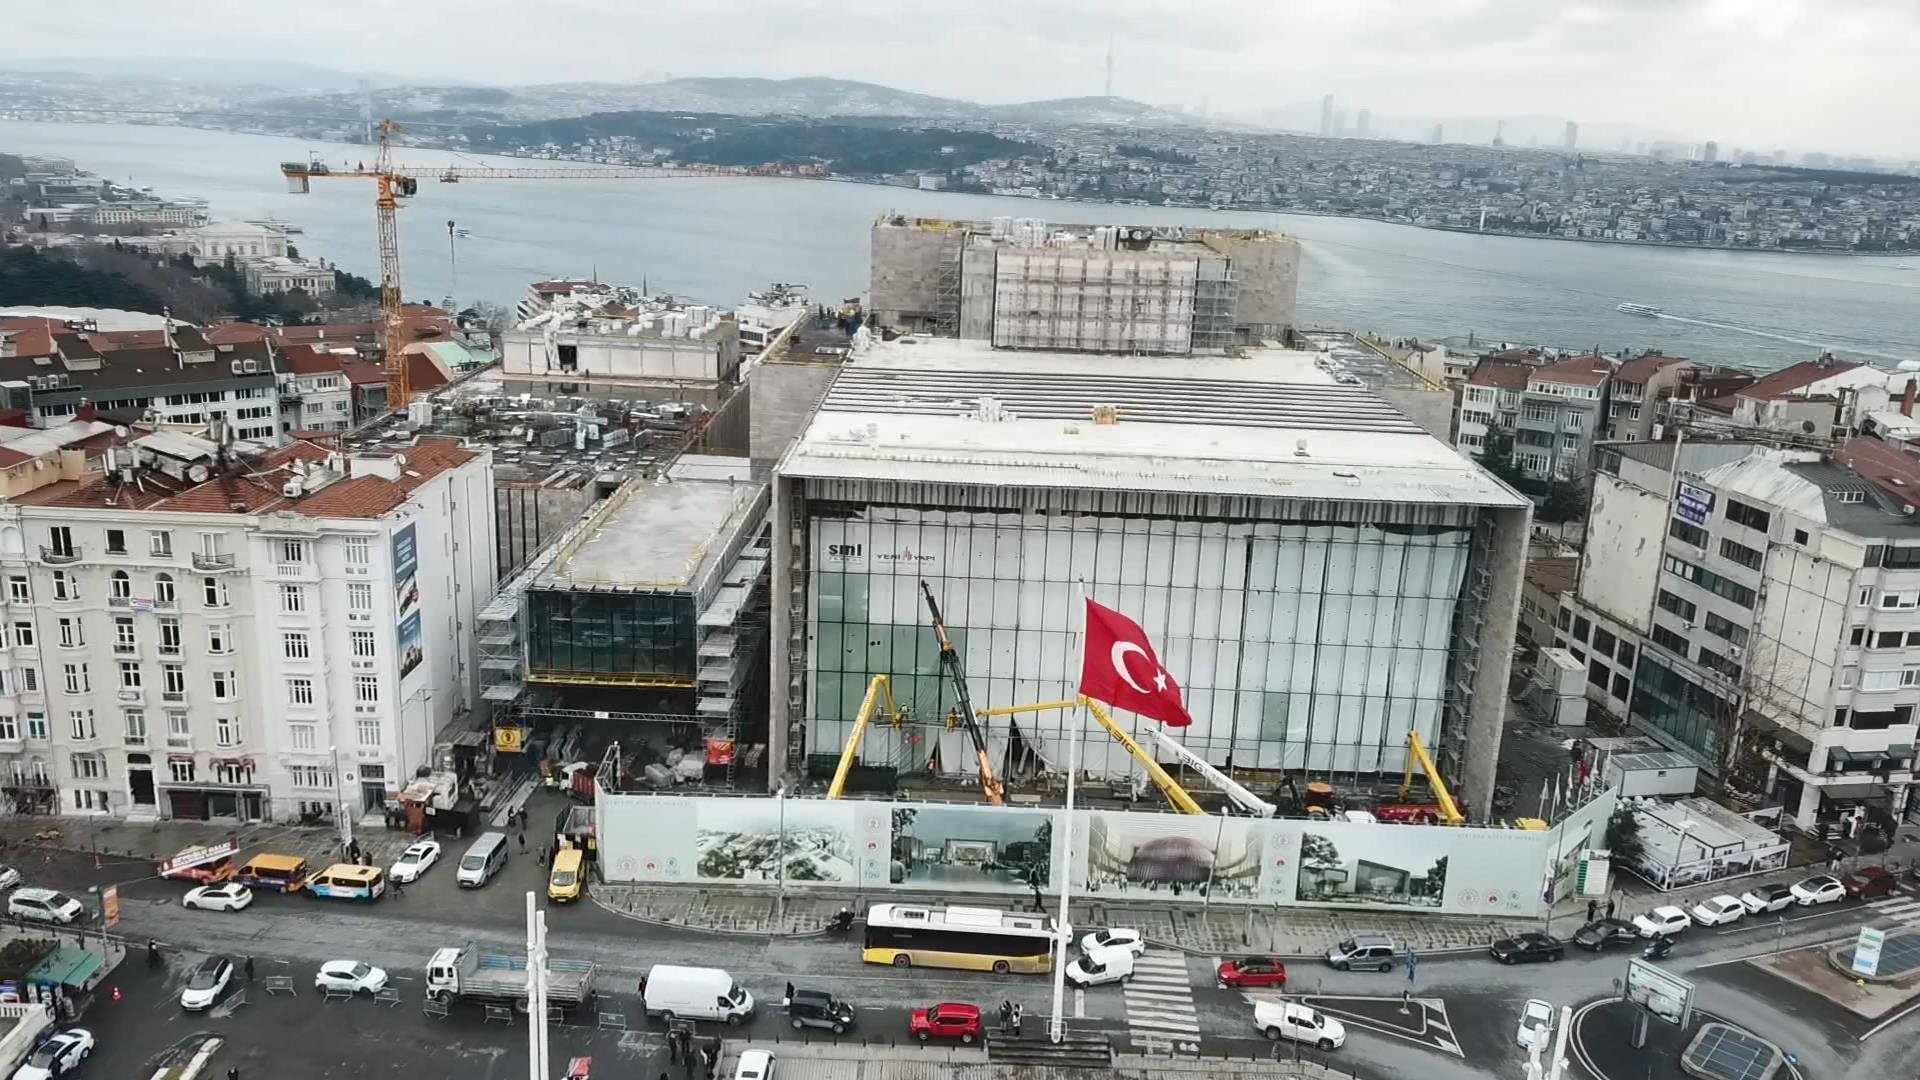 An aerial view of the ongoing construction at Atatürk Cultural Center, Taksim Square, Istanbul, Feb. 26, 2020. (DHA PHOTO)